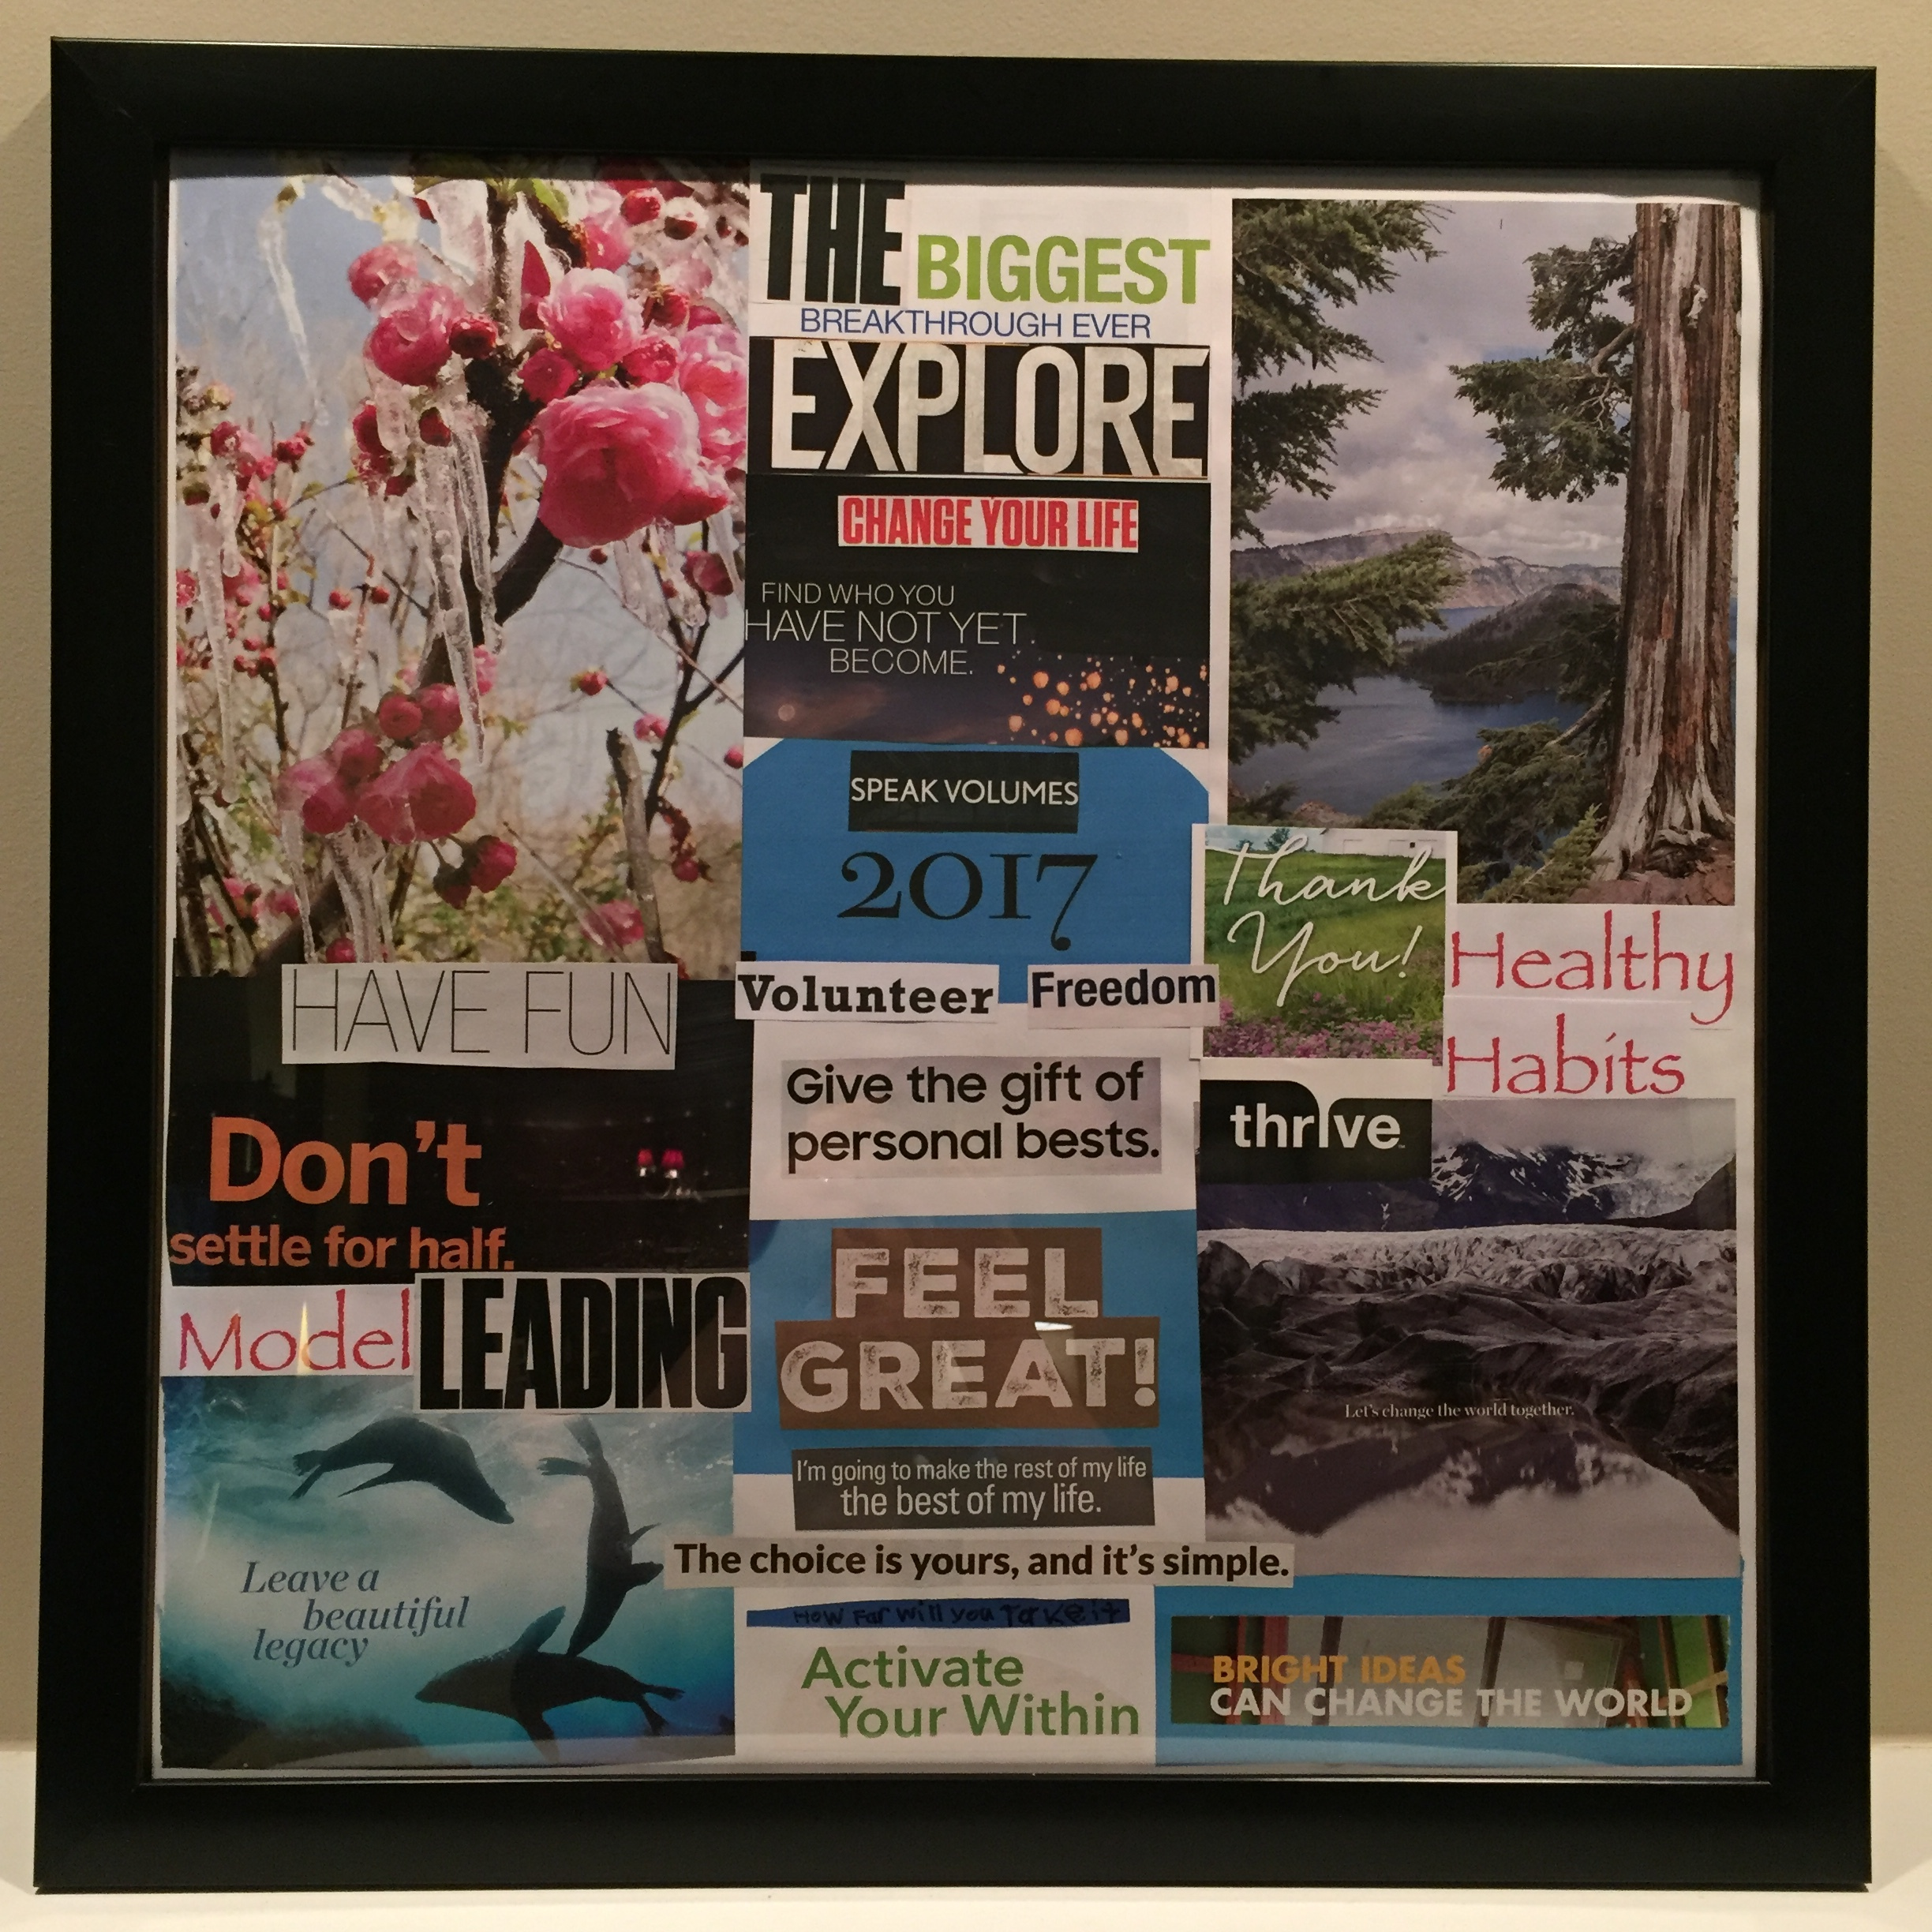 My completed 2017 vision board.